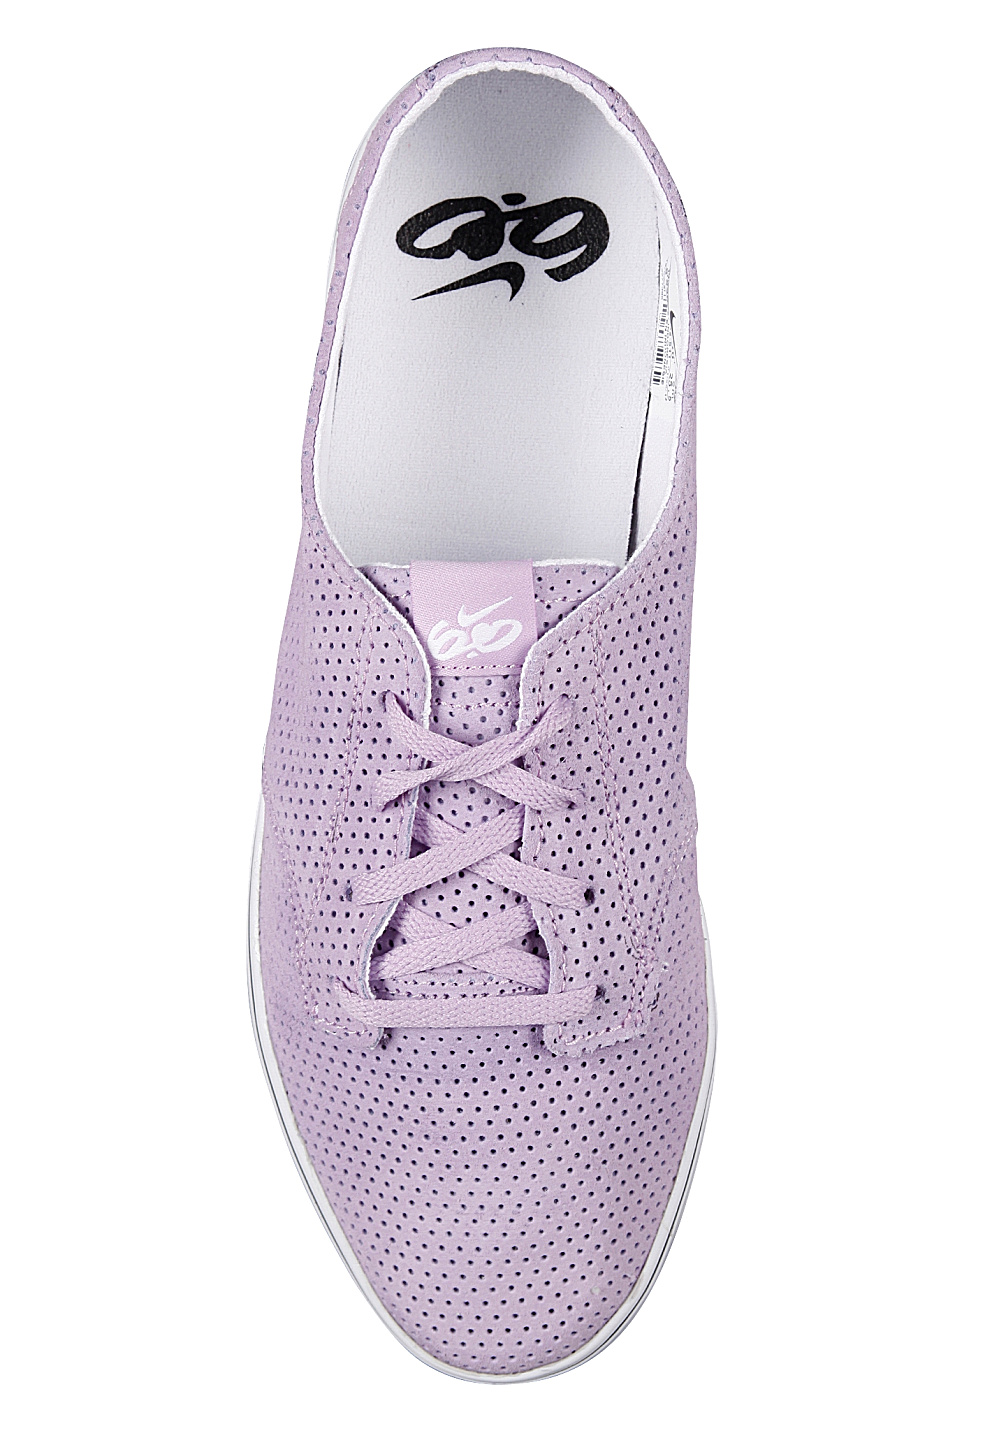 e73e3e4f58c4 Previous. Next. -65%. This product is currently out of stock. NIKE SB. Braata  Lite - Sneakers for Women